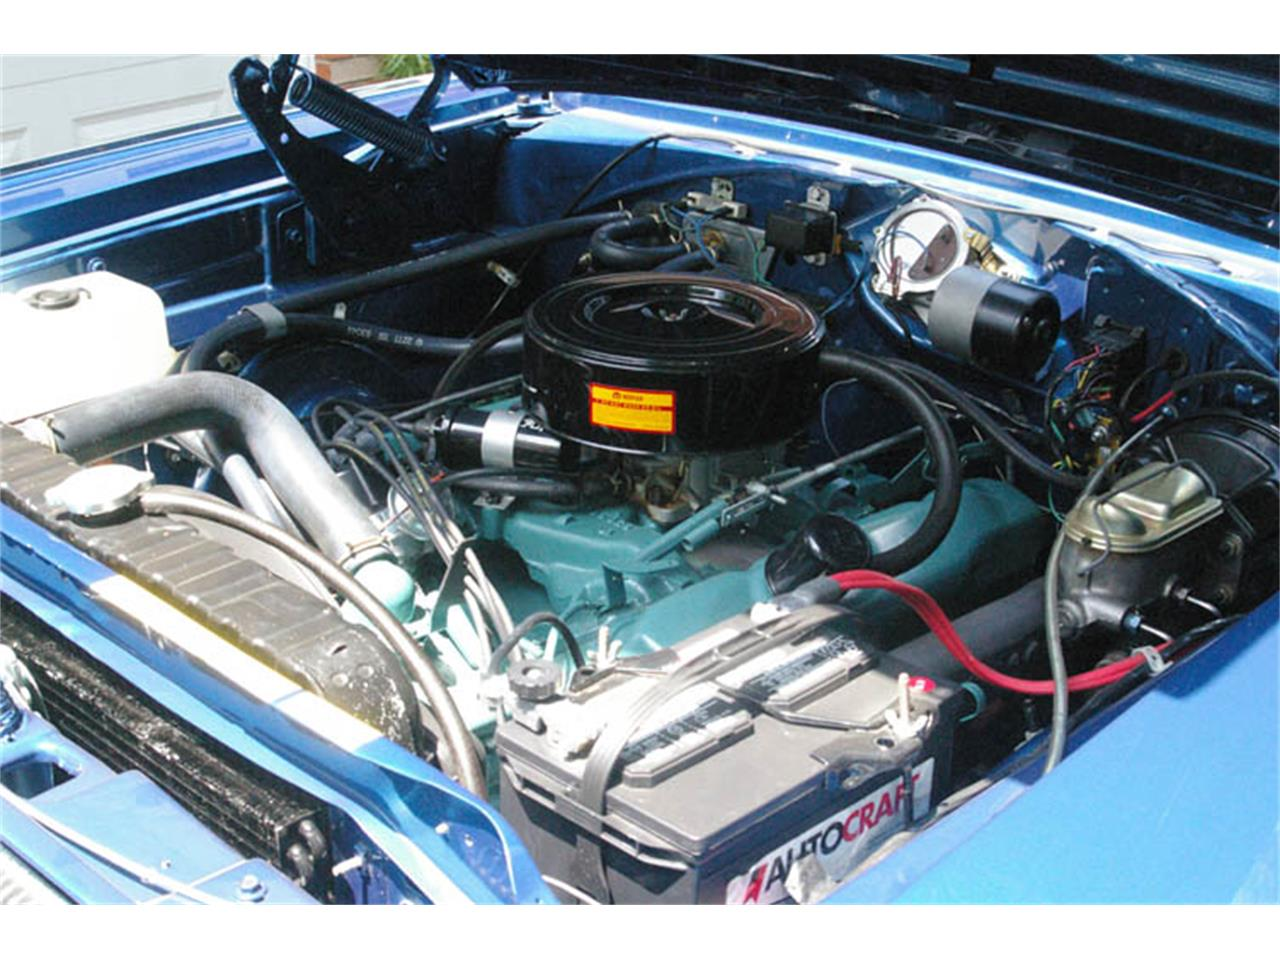 Large Picture of 1966 Dodge Charger located in Winston-Salem North Carolina - $62,500.00 Offered by a Private Seller - FQAT